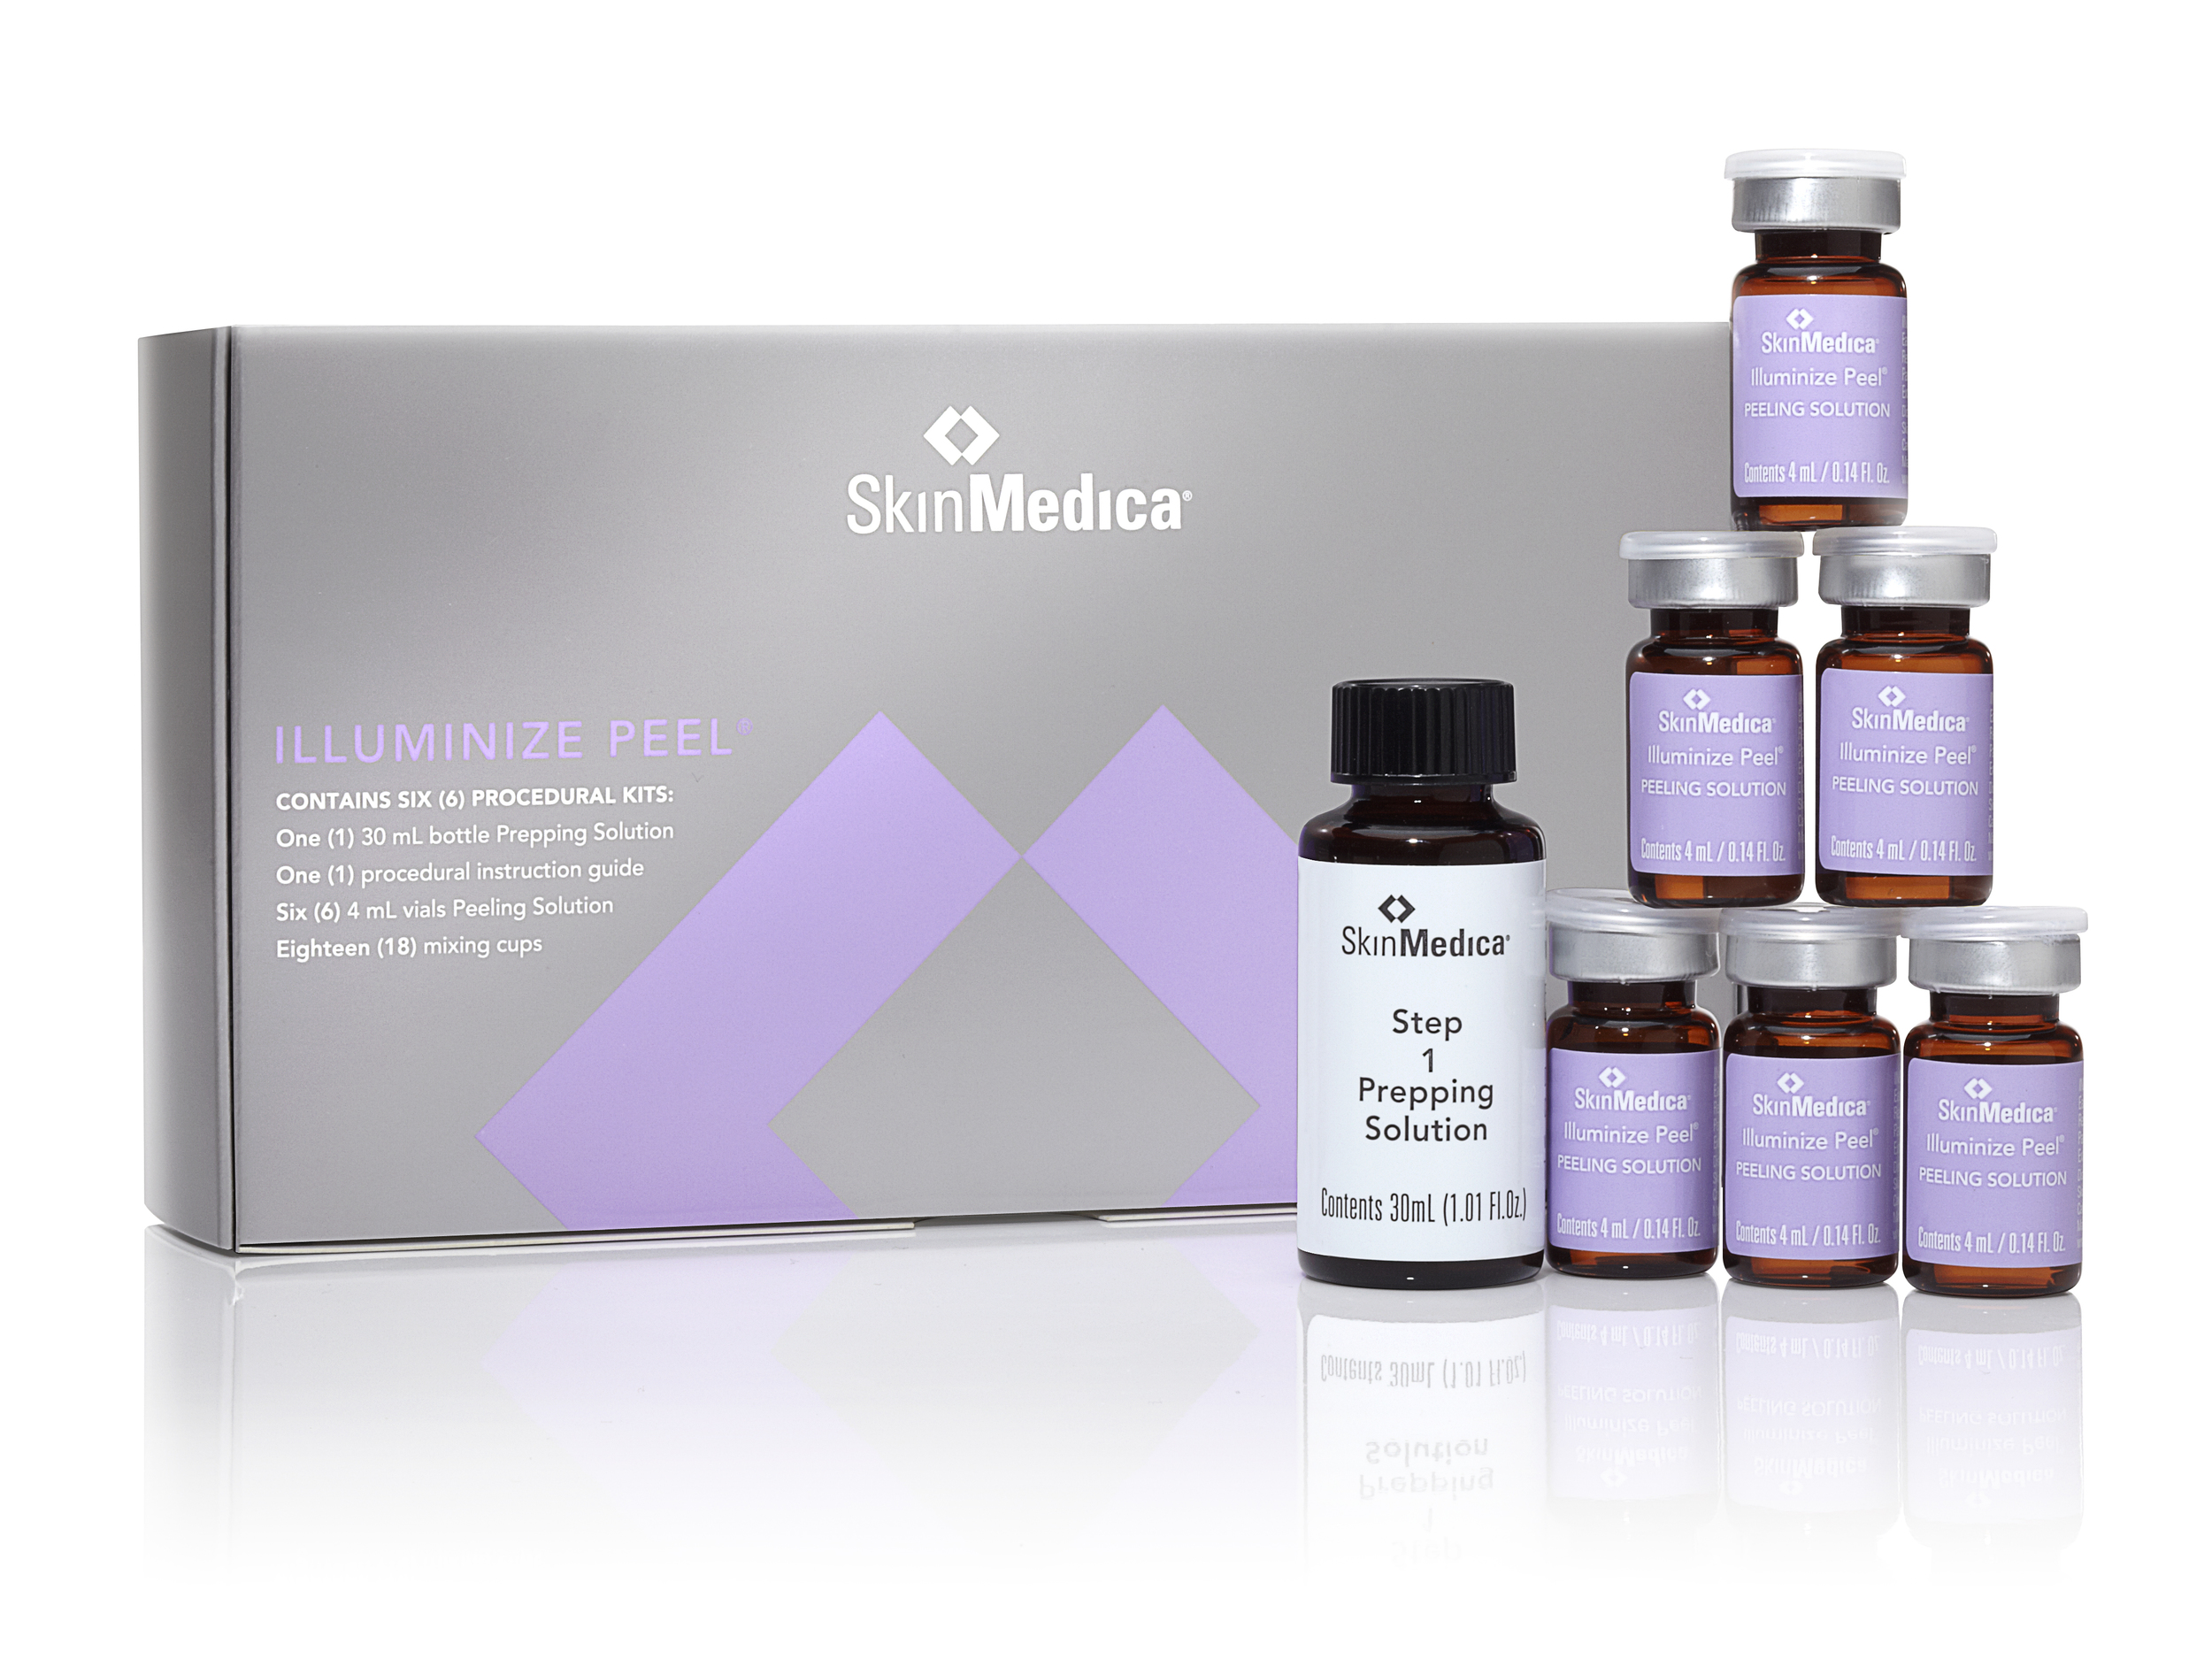 SkinMedica Illuminize medical skincare product at Florida Aesthetics and Medical Weight Loss in Brandon, Fl